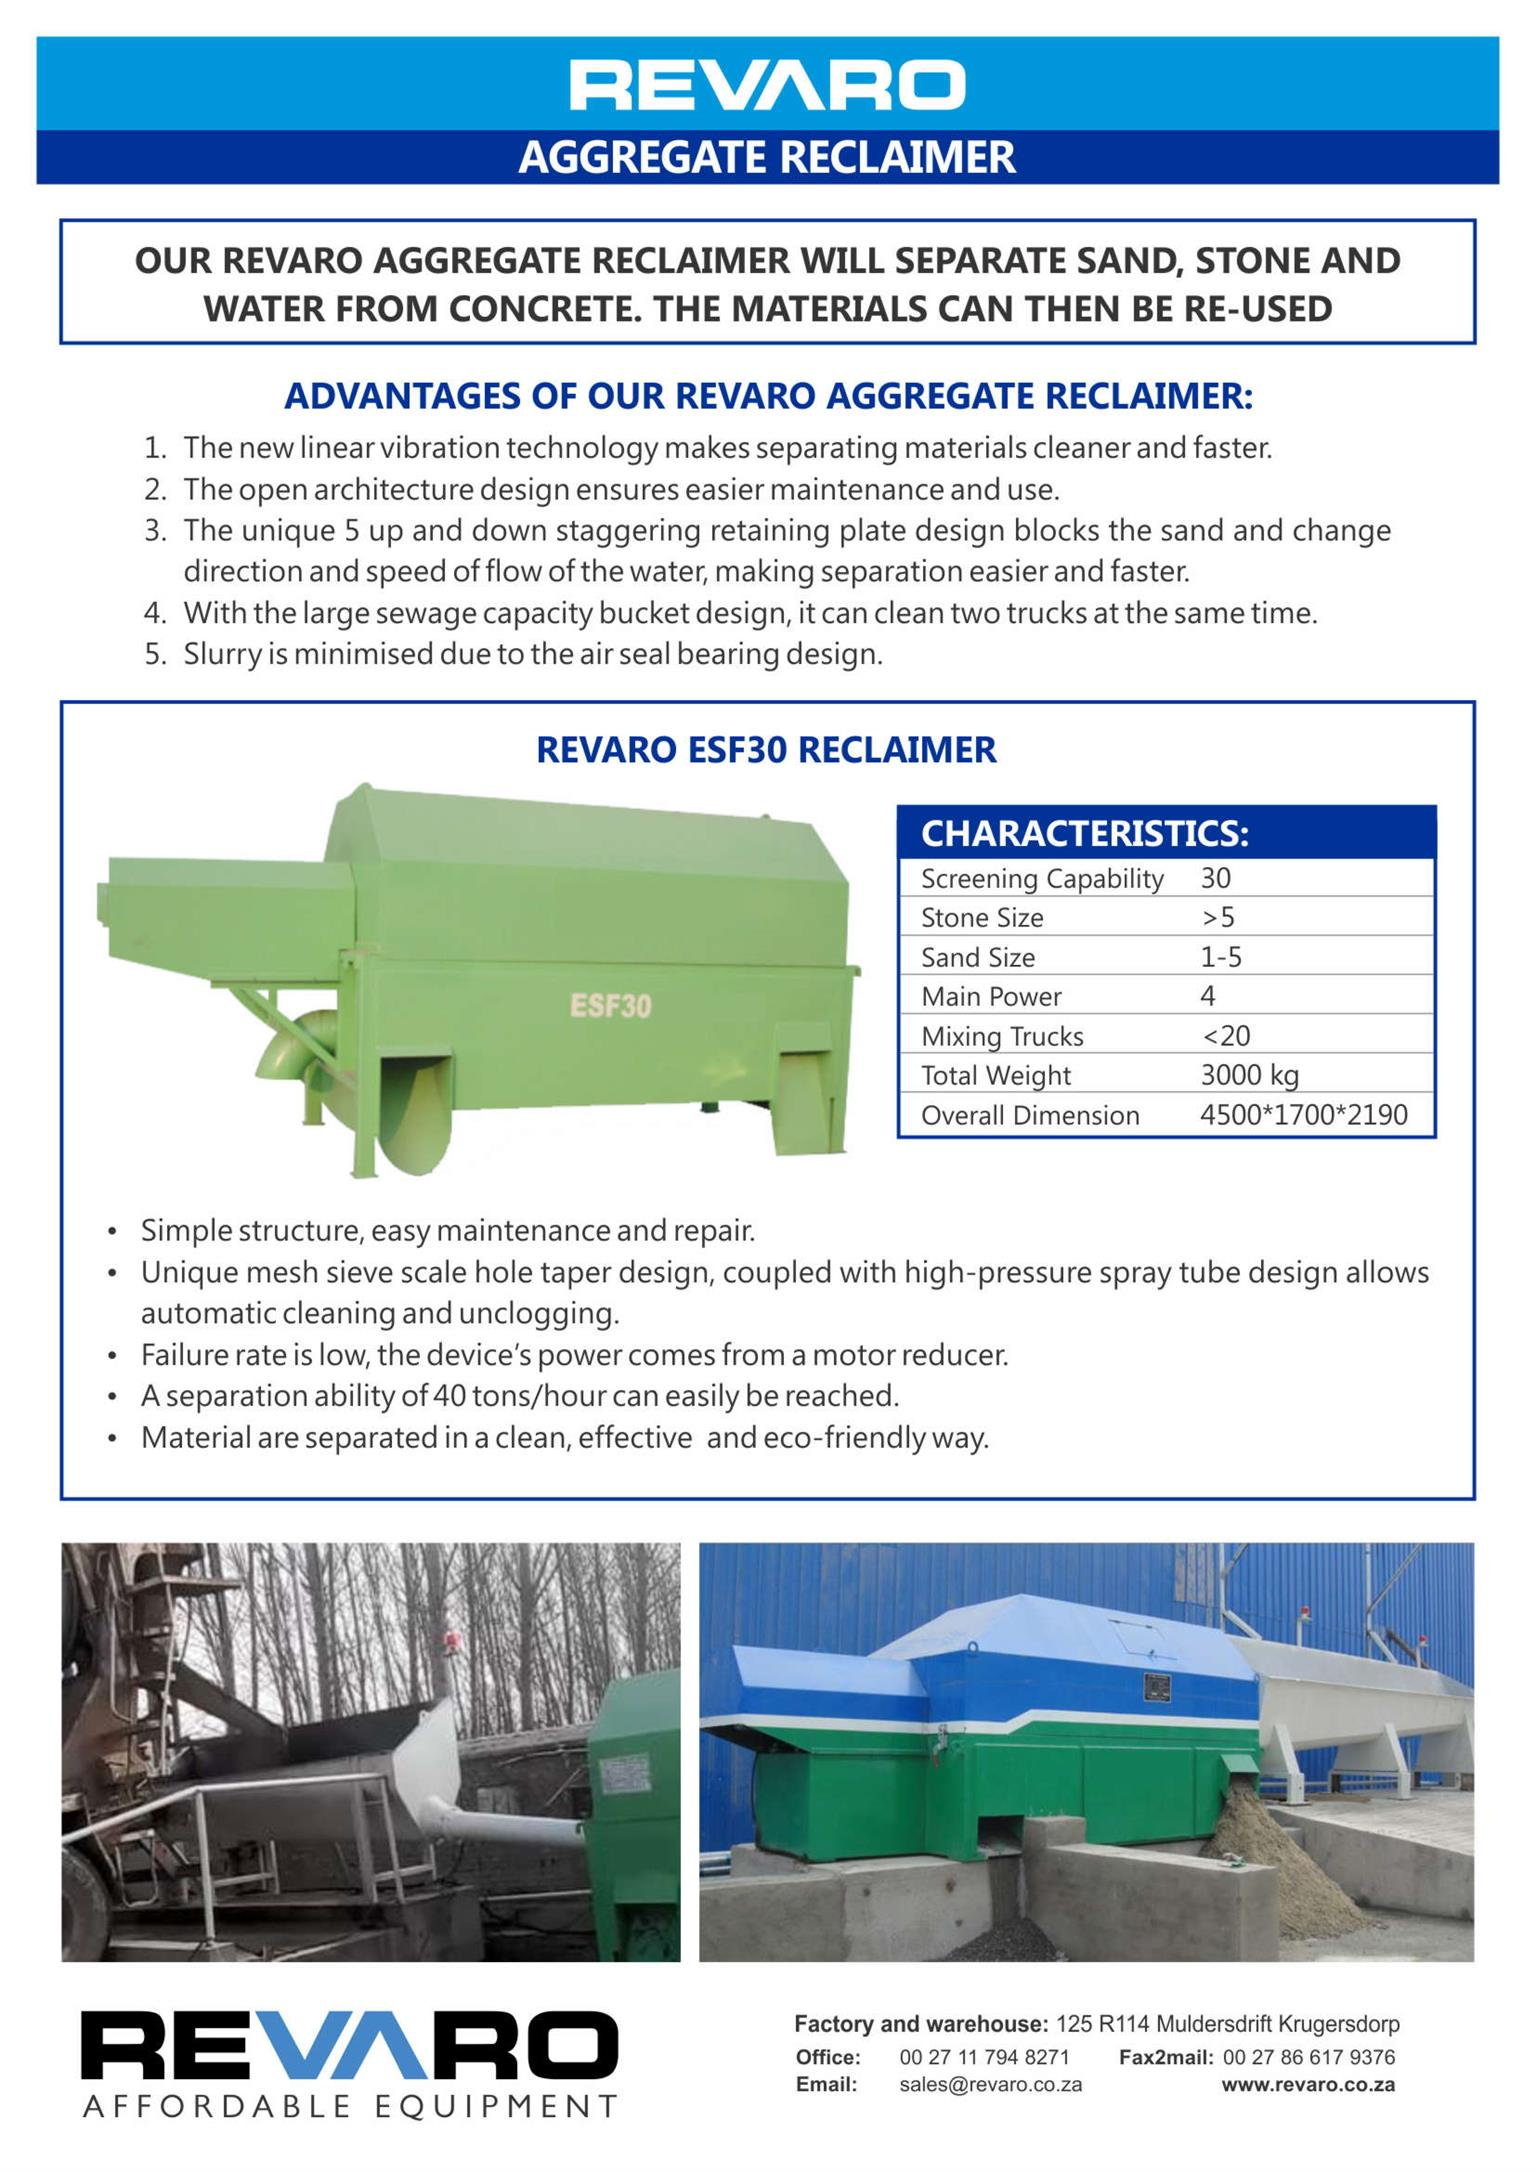 Aggregate Reclaimer Will separate cements from sand and stone aggregates